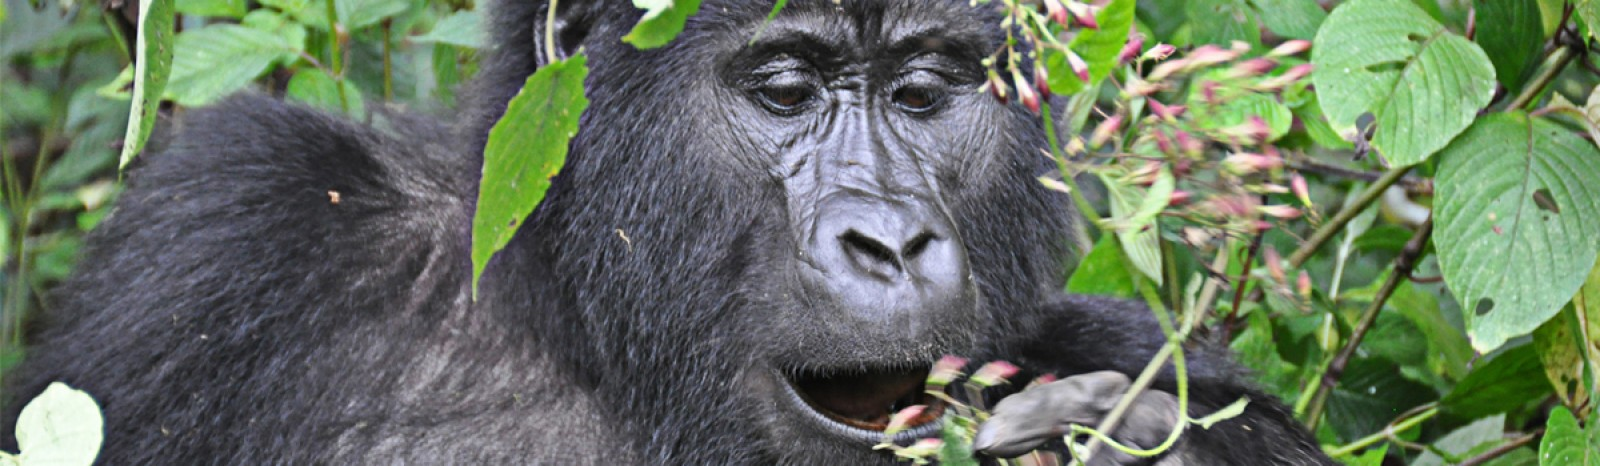 mountain-gorilla2